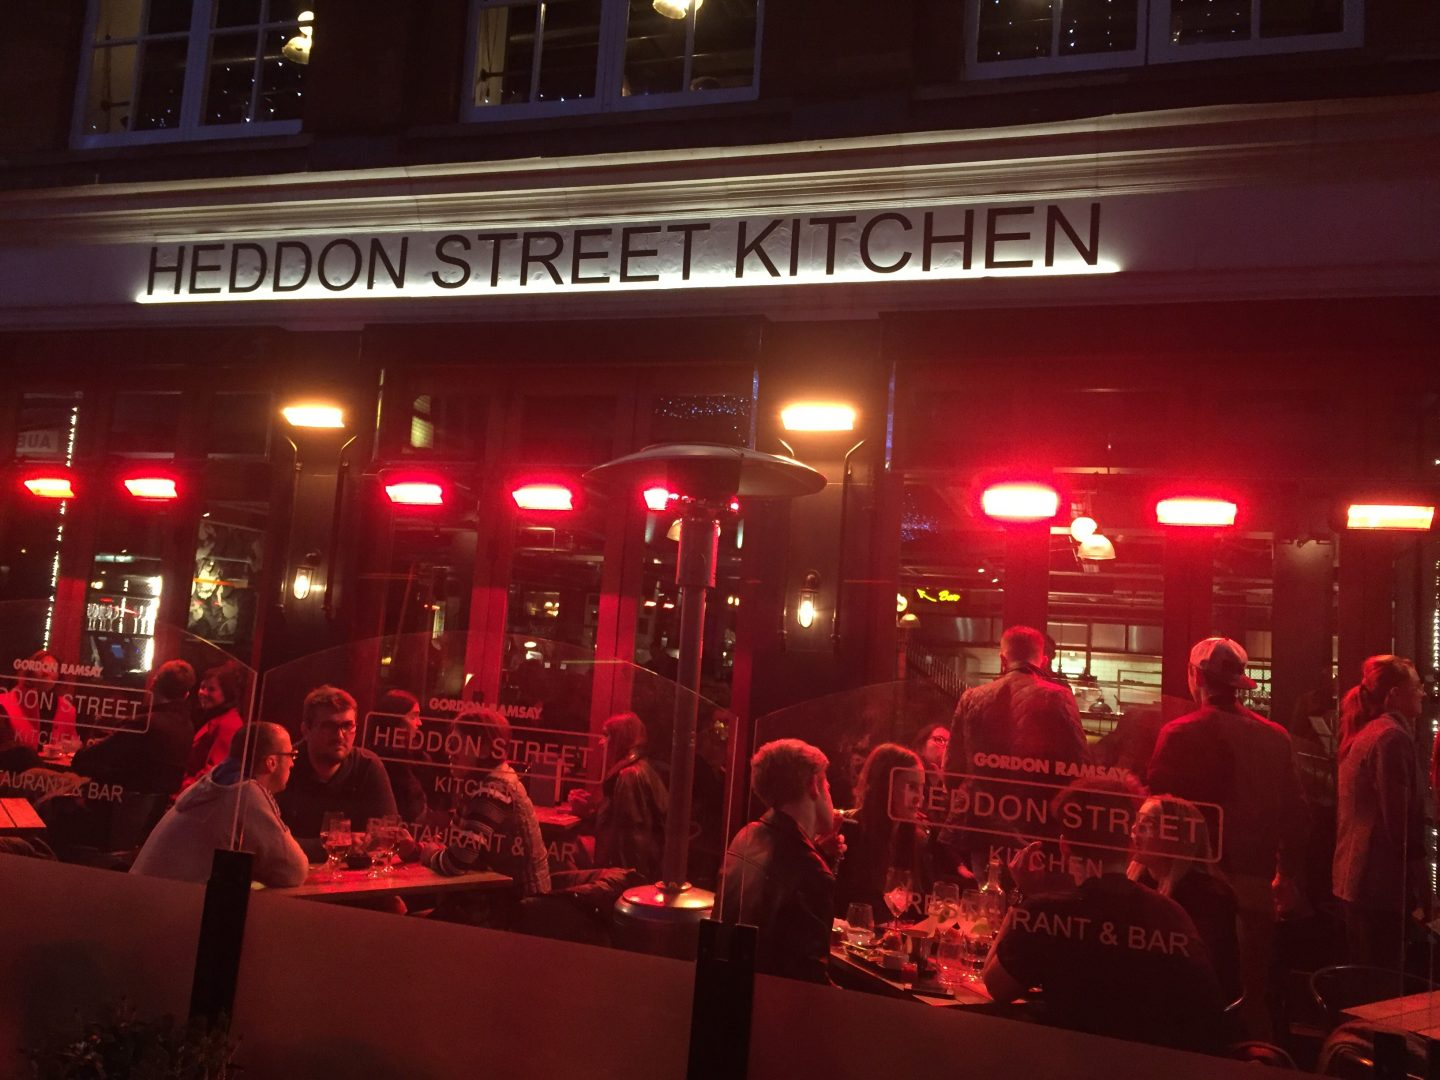 Dinner at Heddon Street Kitchen